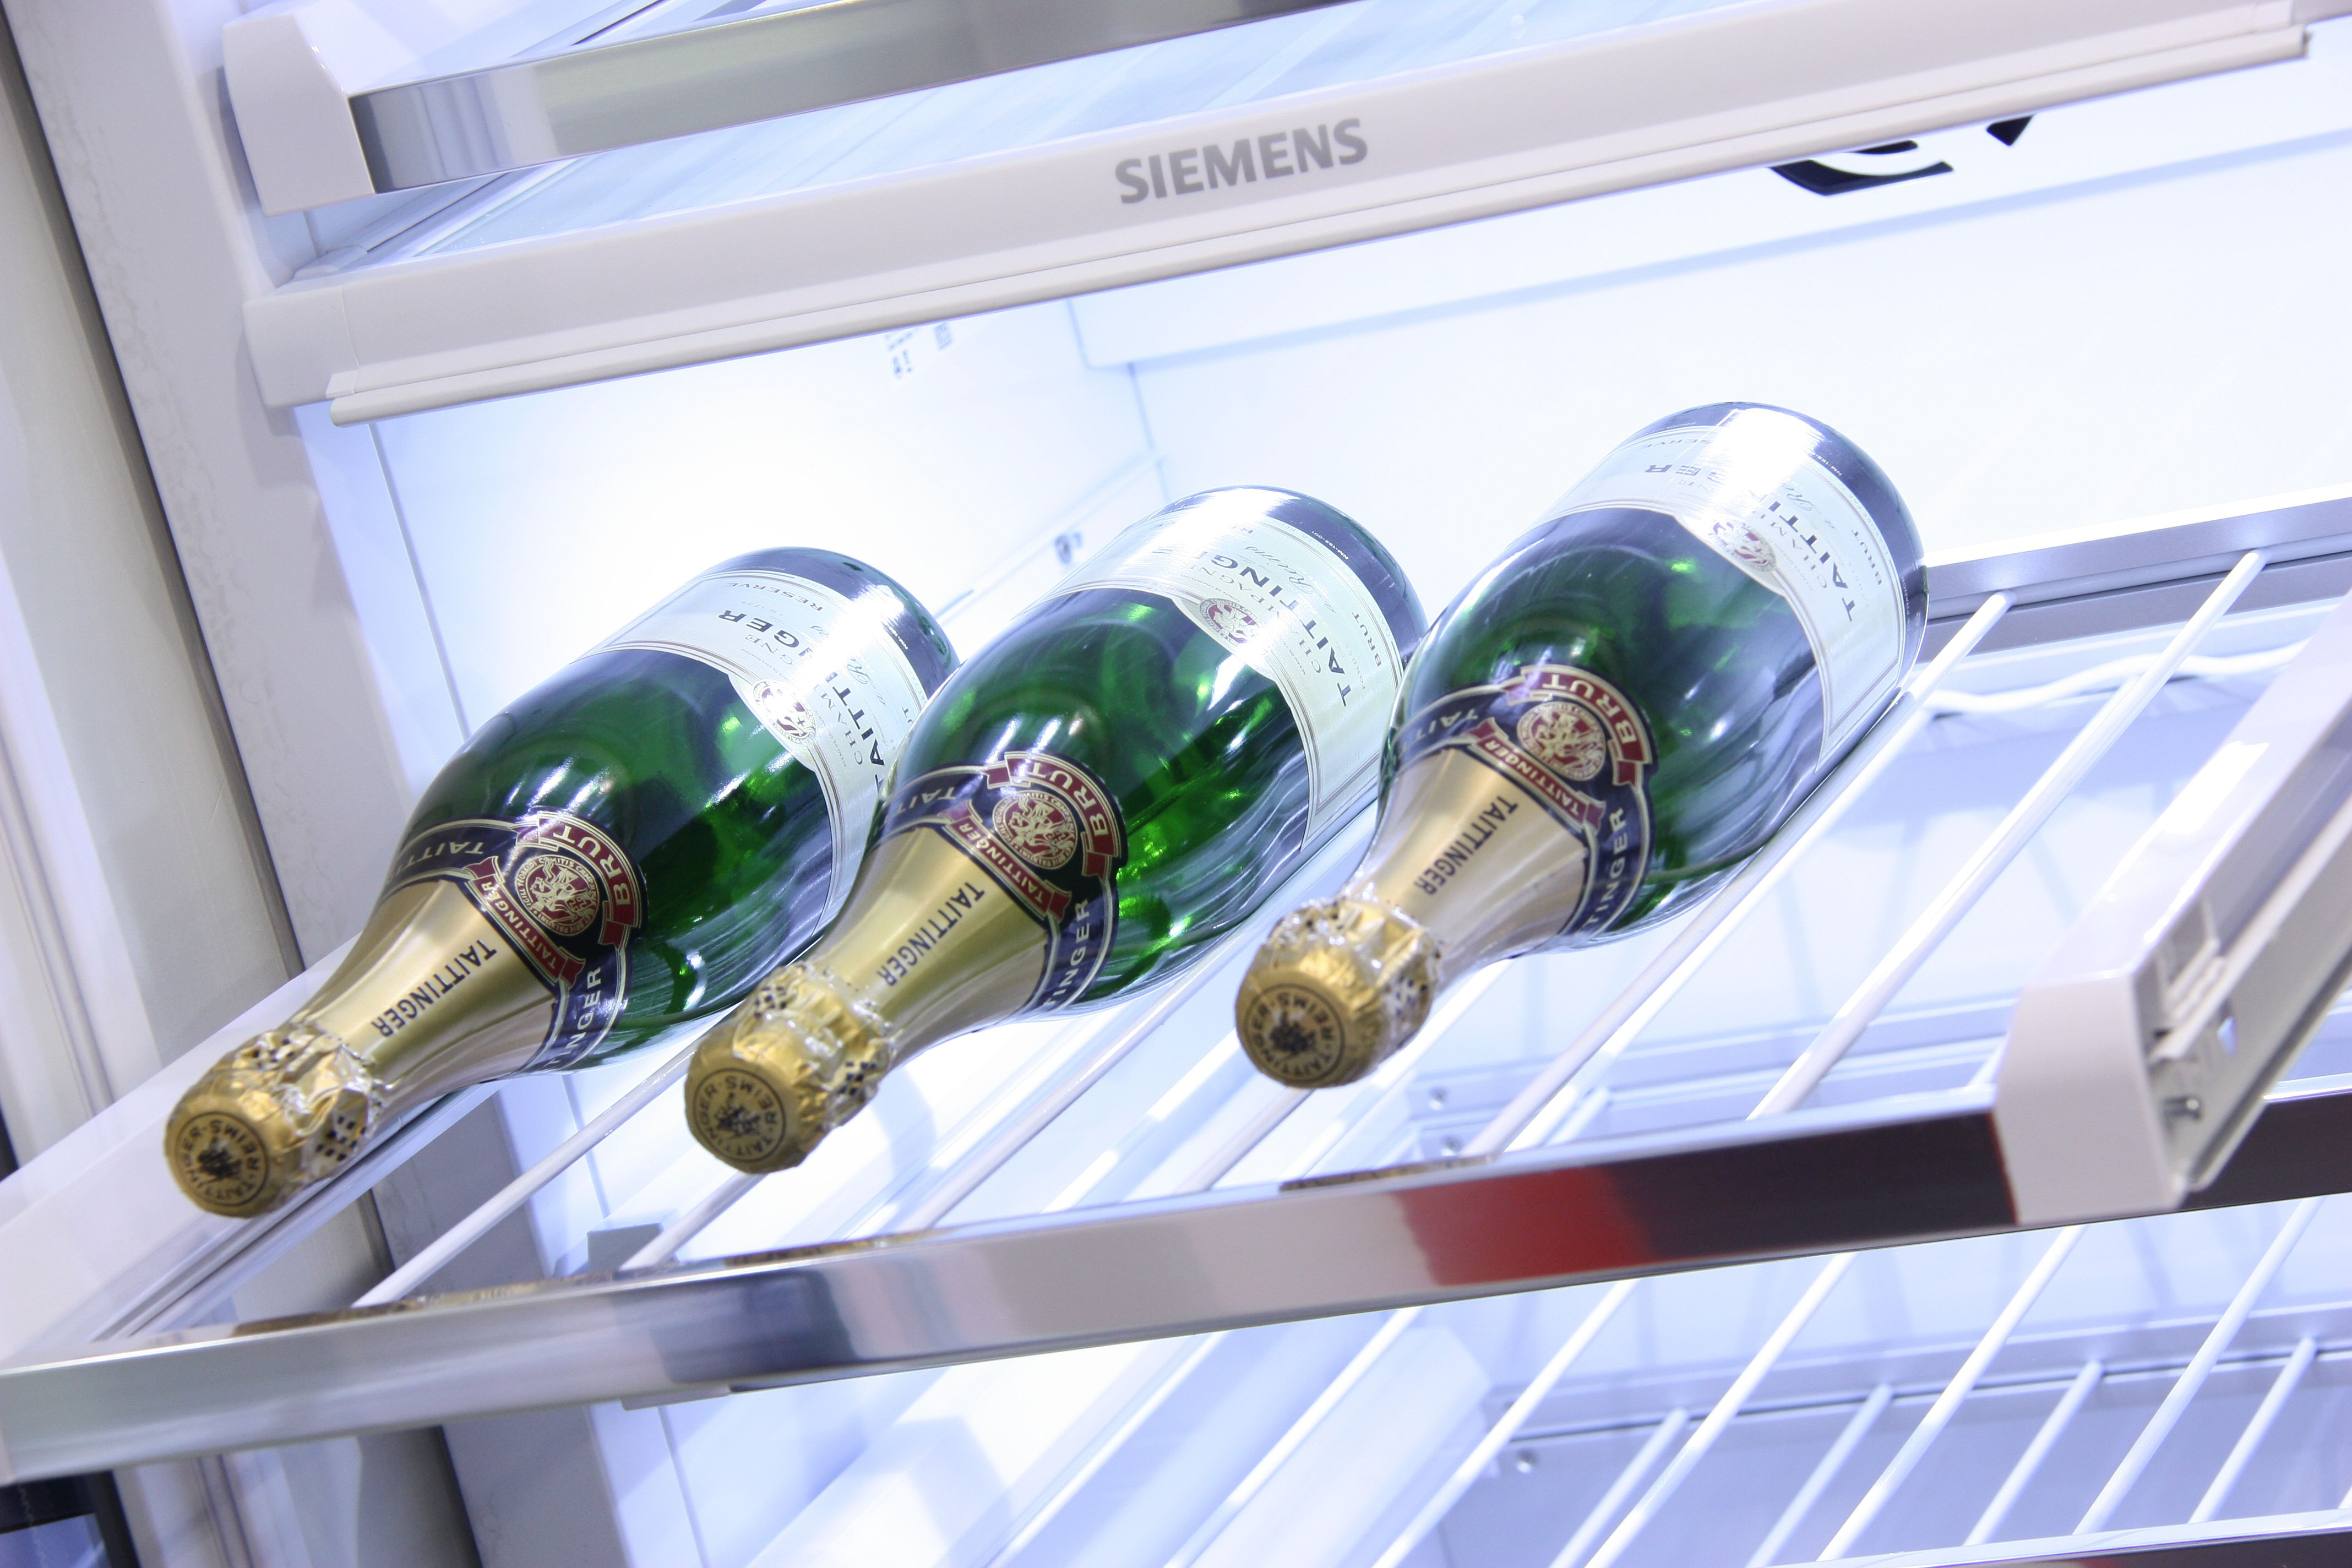 Siemens built-in refrigeration on display @spillersofchard now with 20% off.  Siemens Fridge Freezers and Wine storage on display at Spillers.  Complete Your Dream Kitchen today at Spillers of Chard the UK's Premier Kitchen Destination